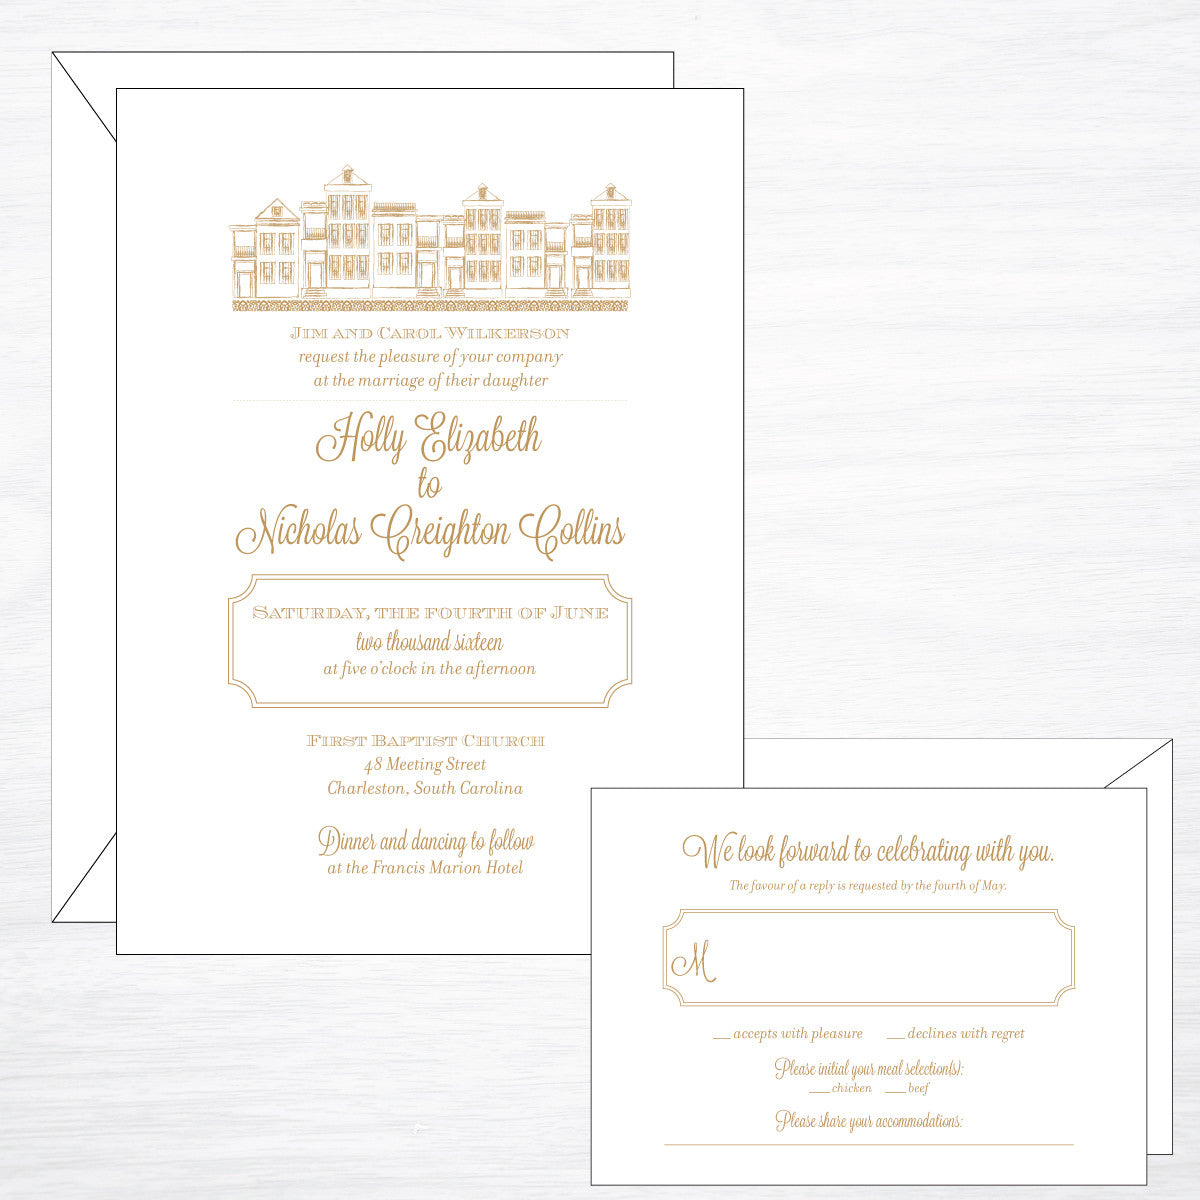 Charleston | Wedding Invitation Suite - shop greeting cards, handmade stationery, & wedding invitations by dodeline design - 1